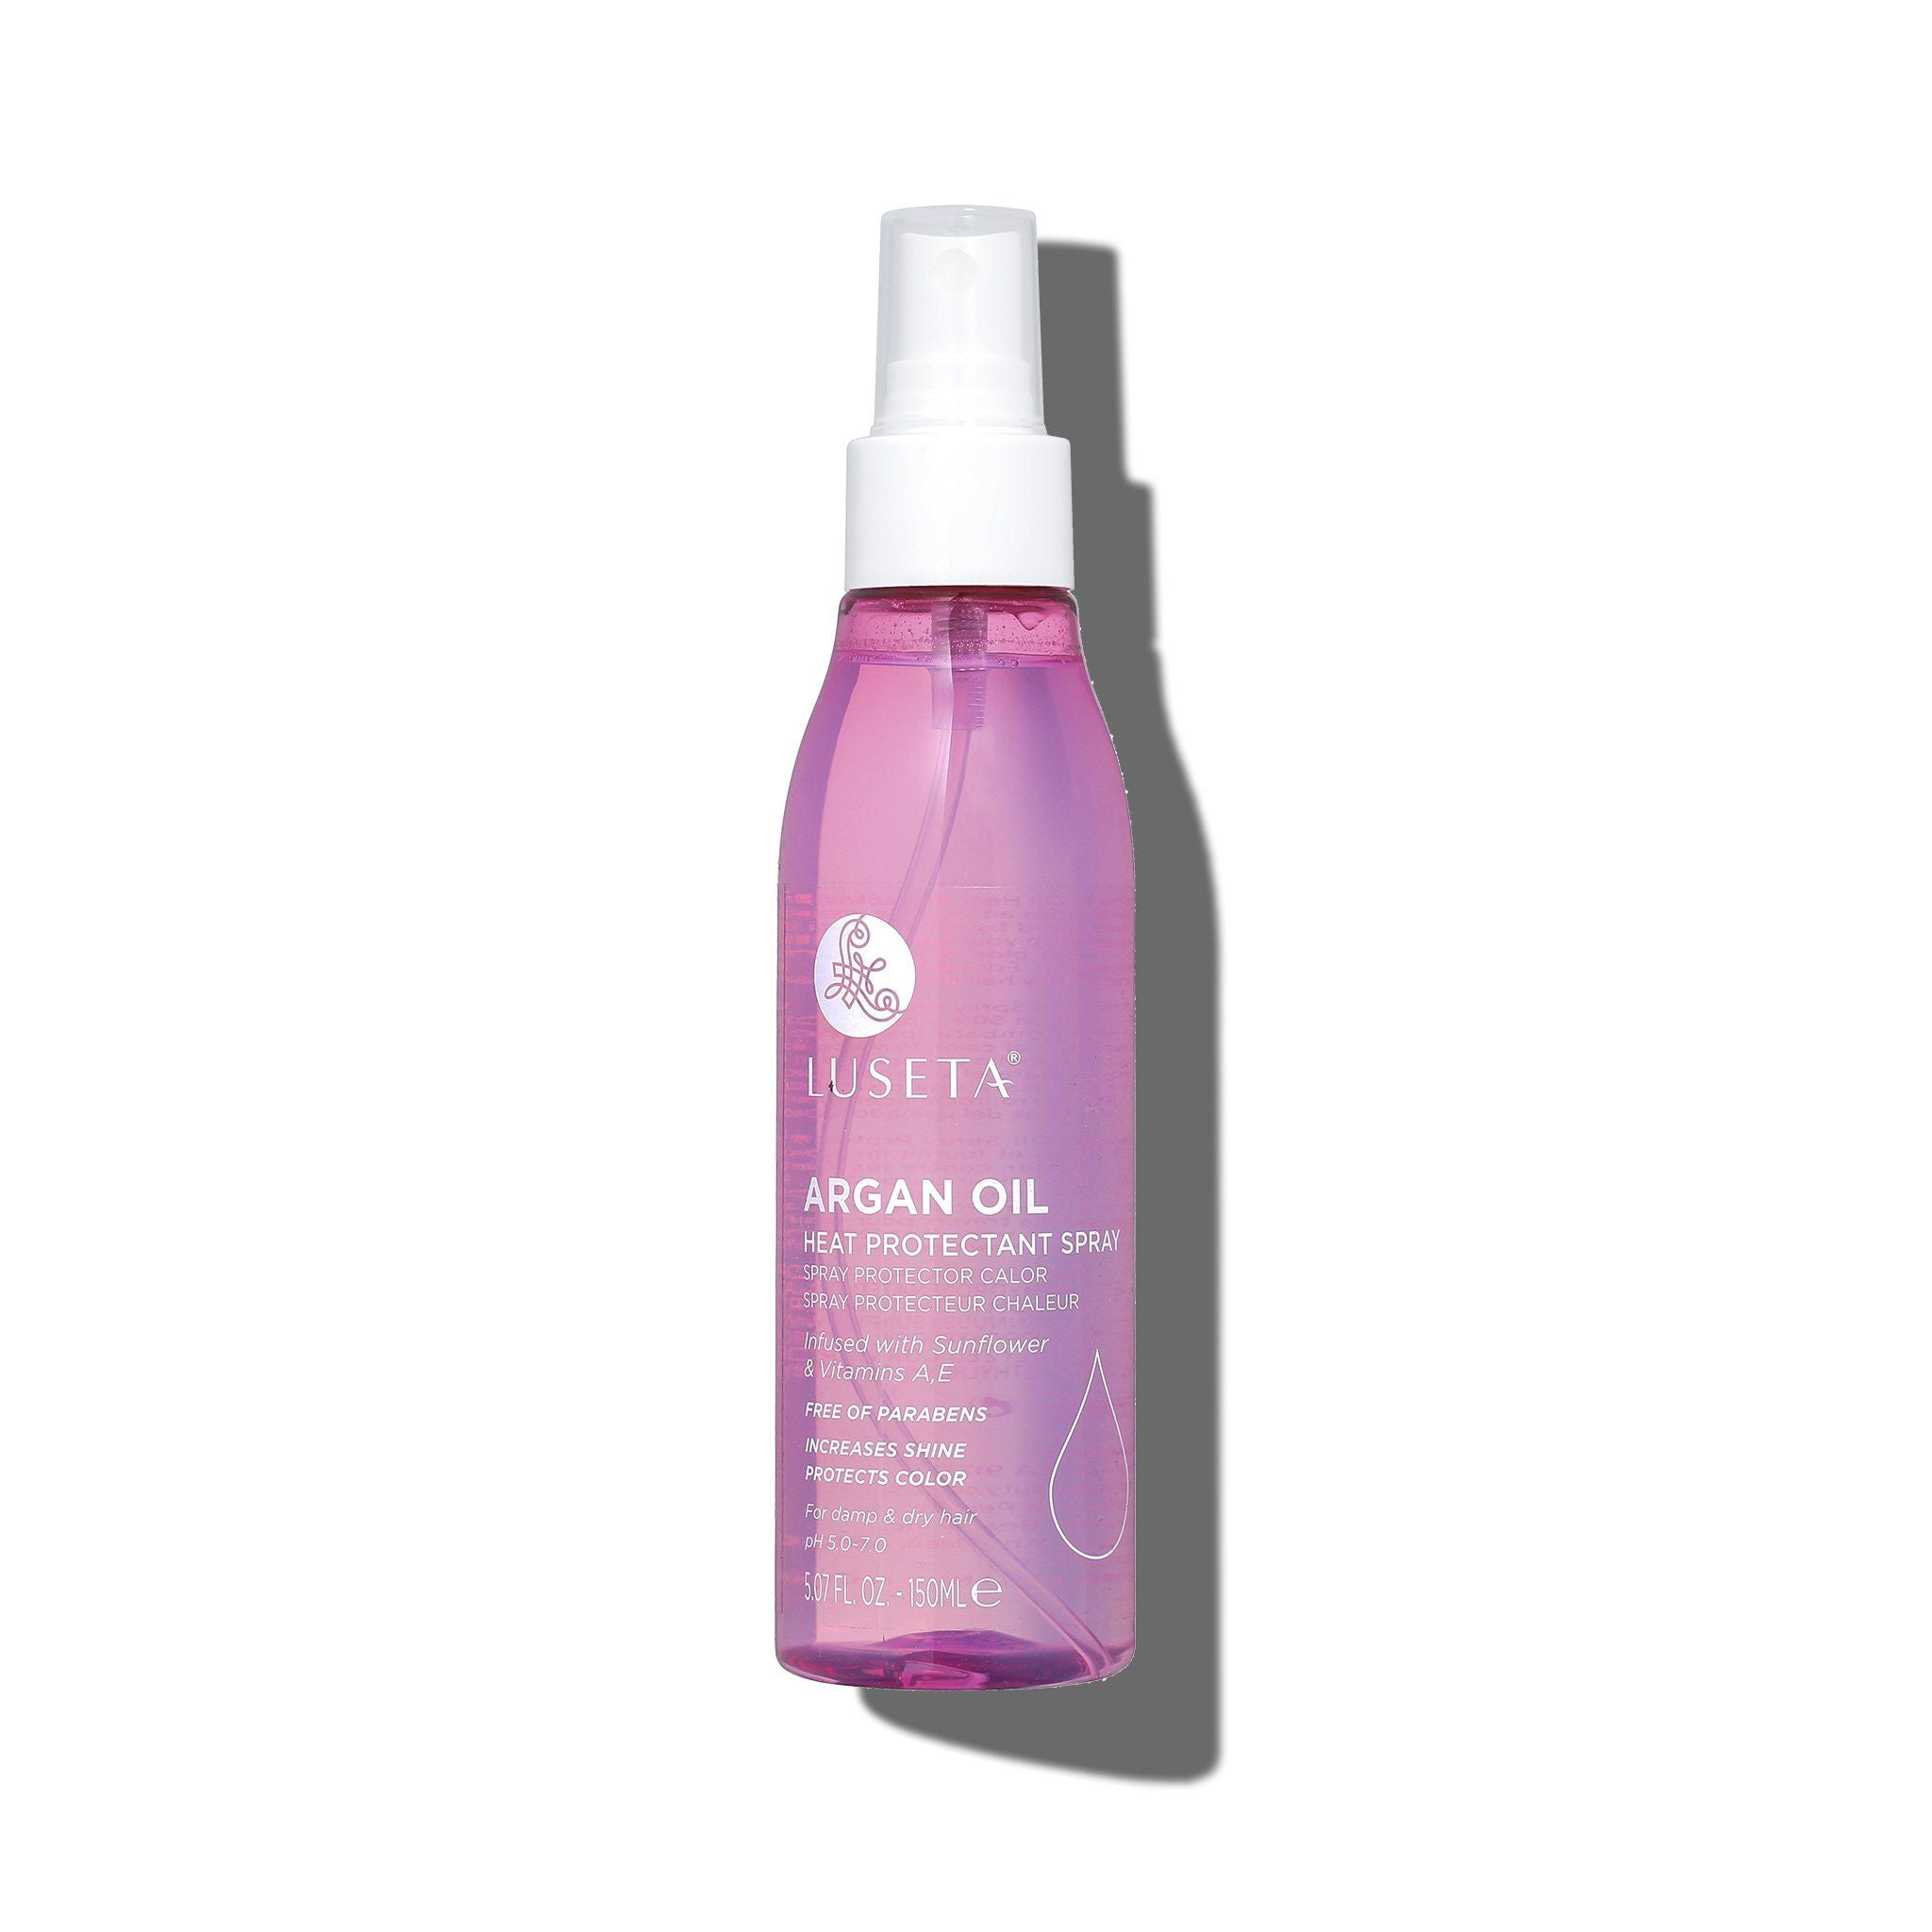 Argan Oil Heat Protectant Spray